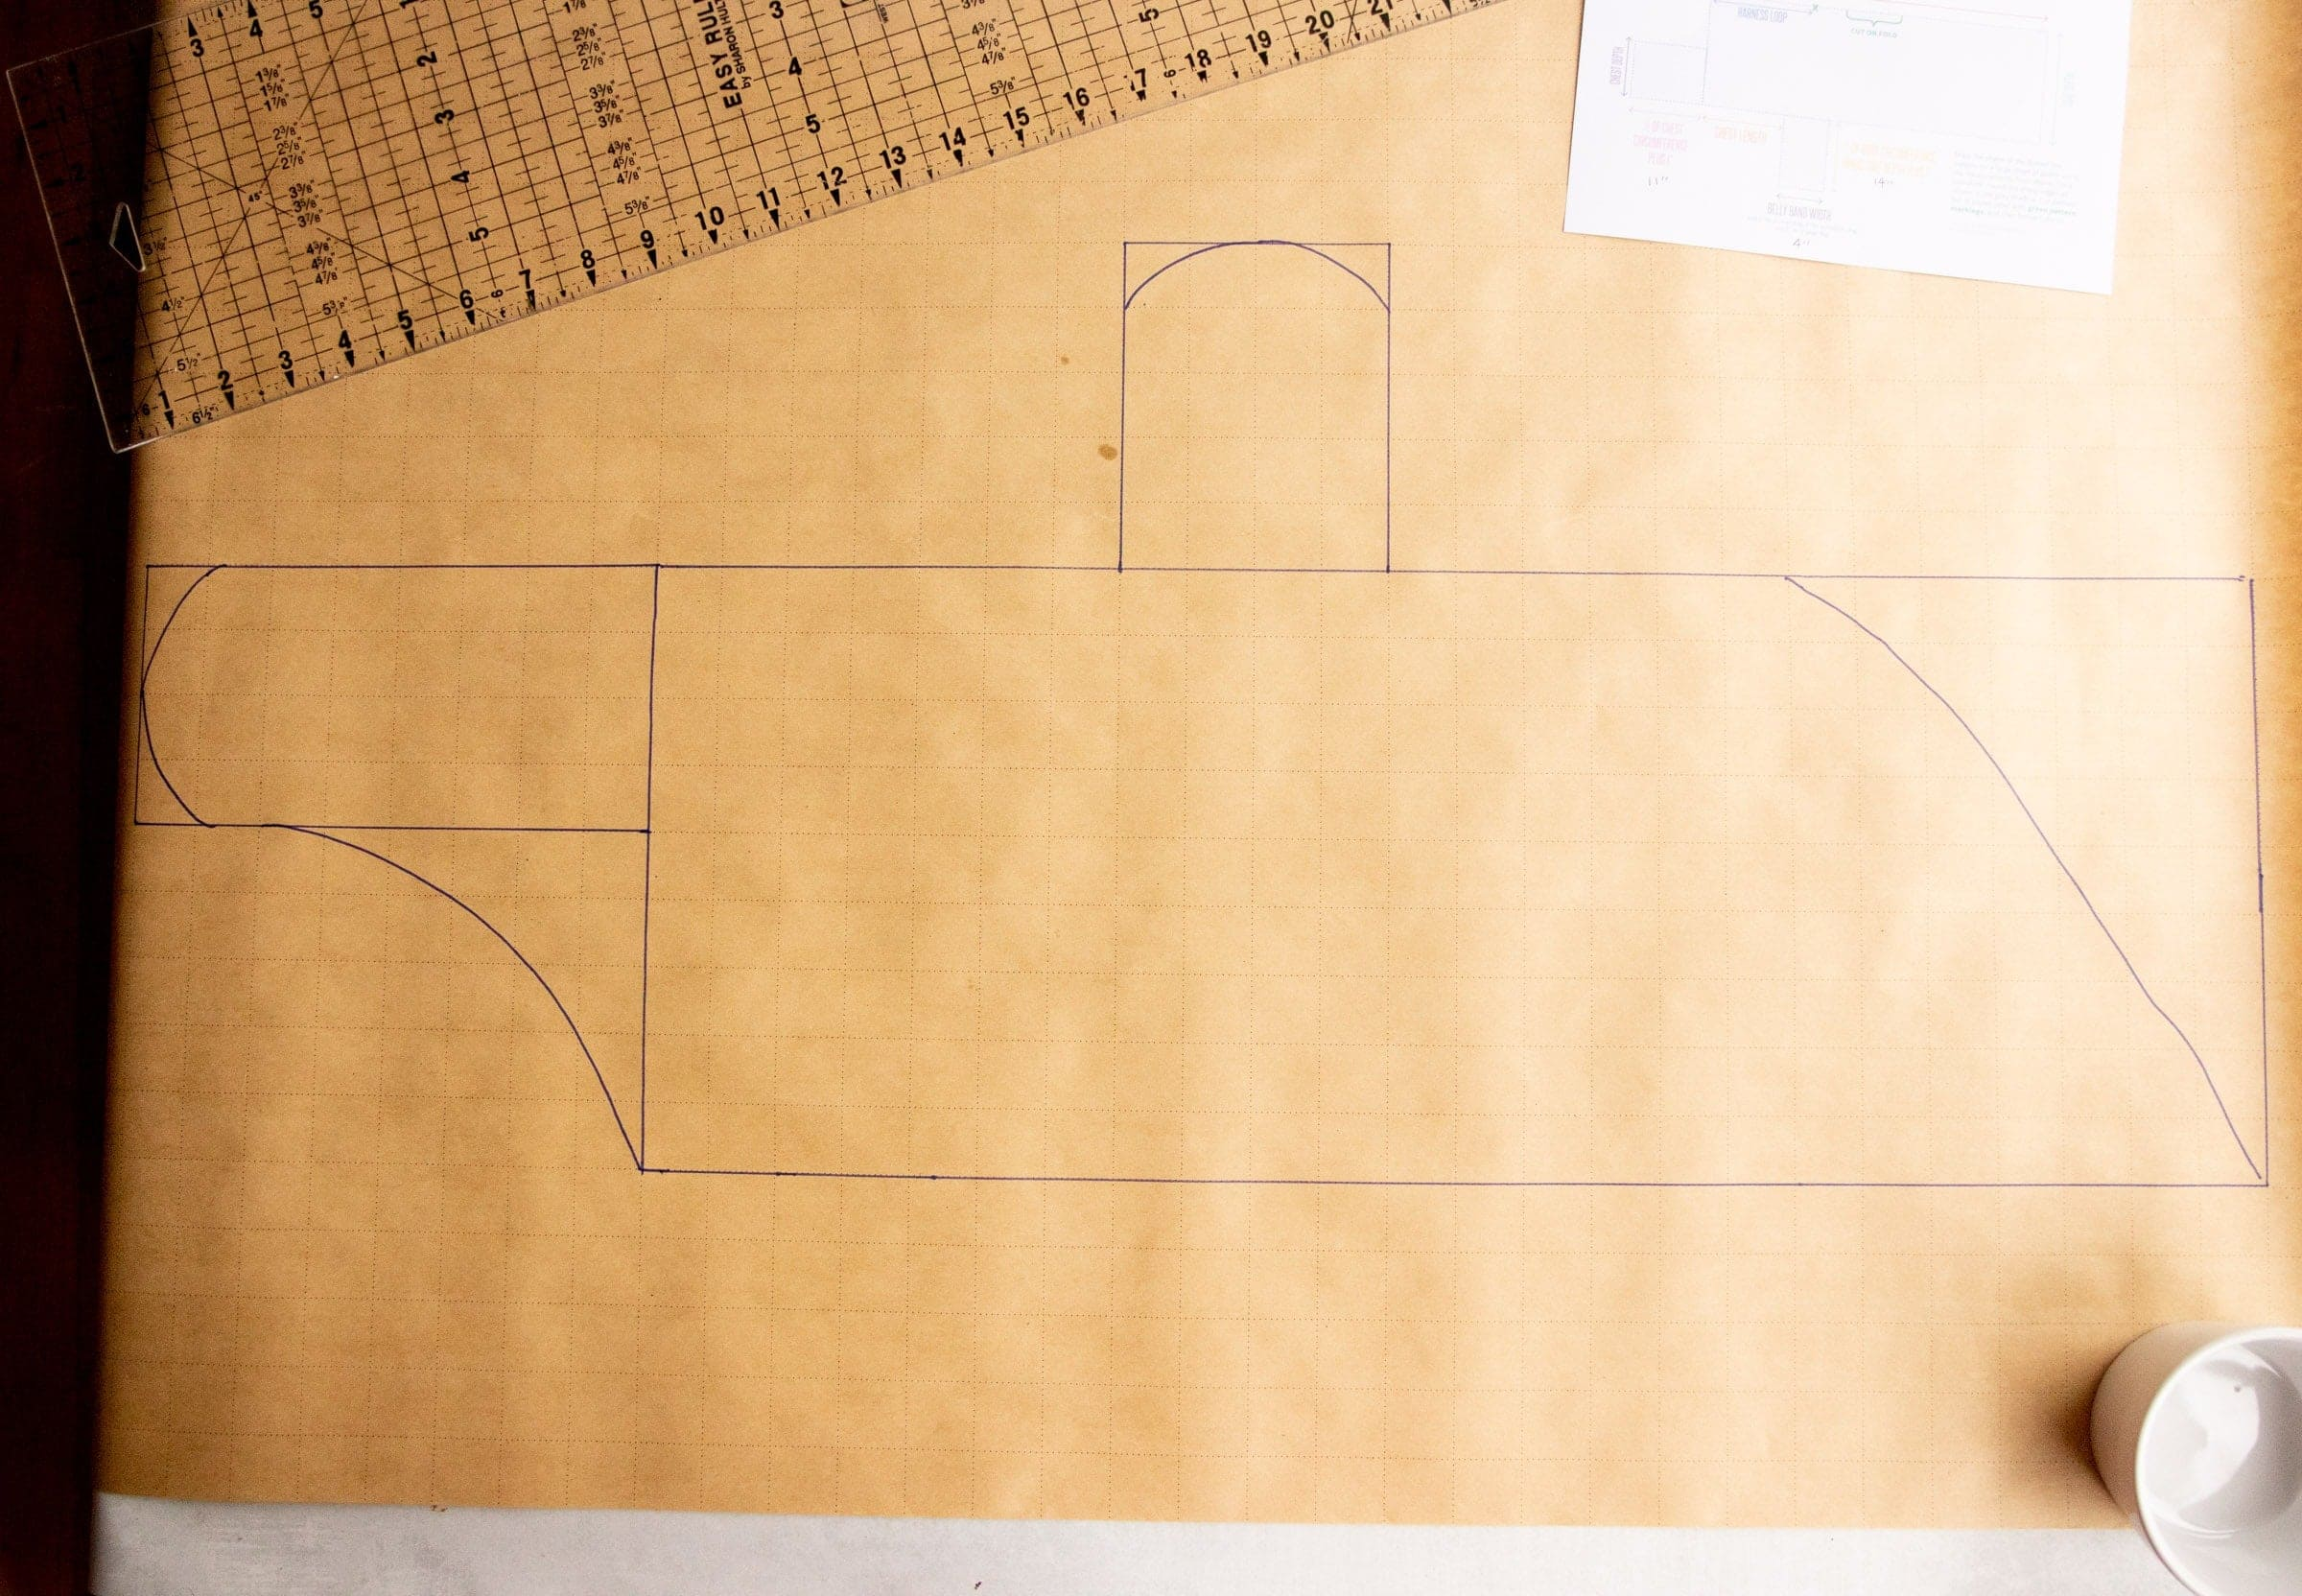 Pattern for a dog coat on pattern paper, with the edges of the pattern curved